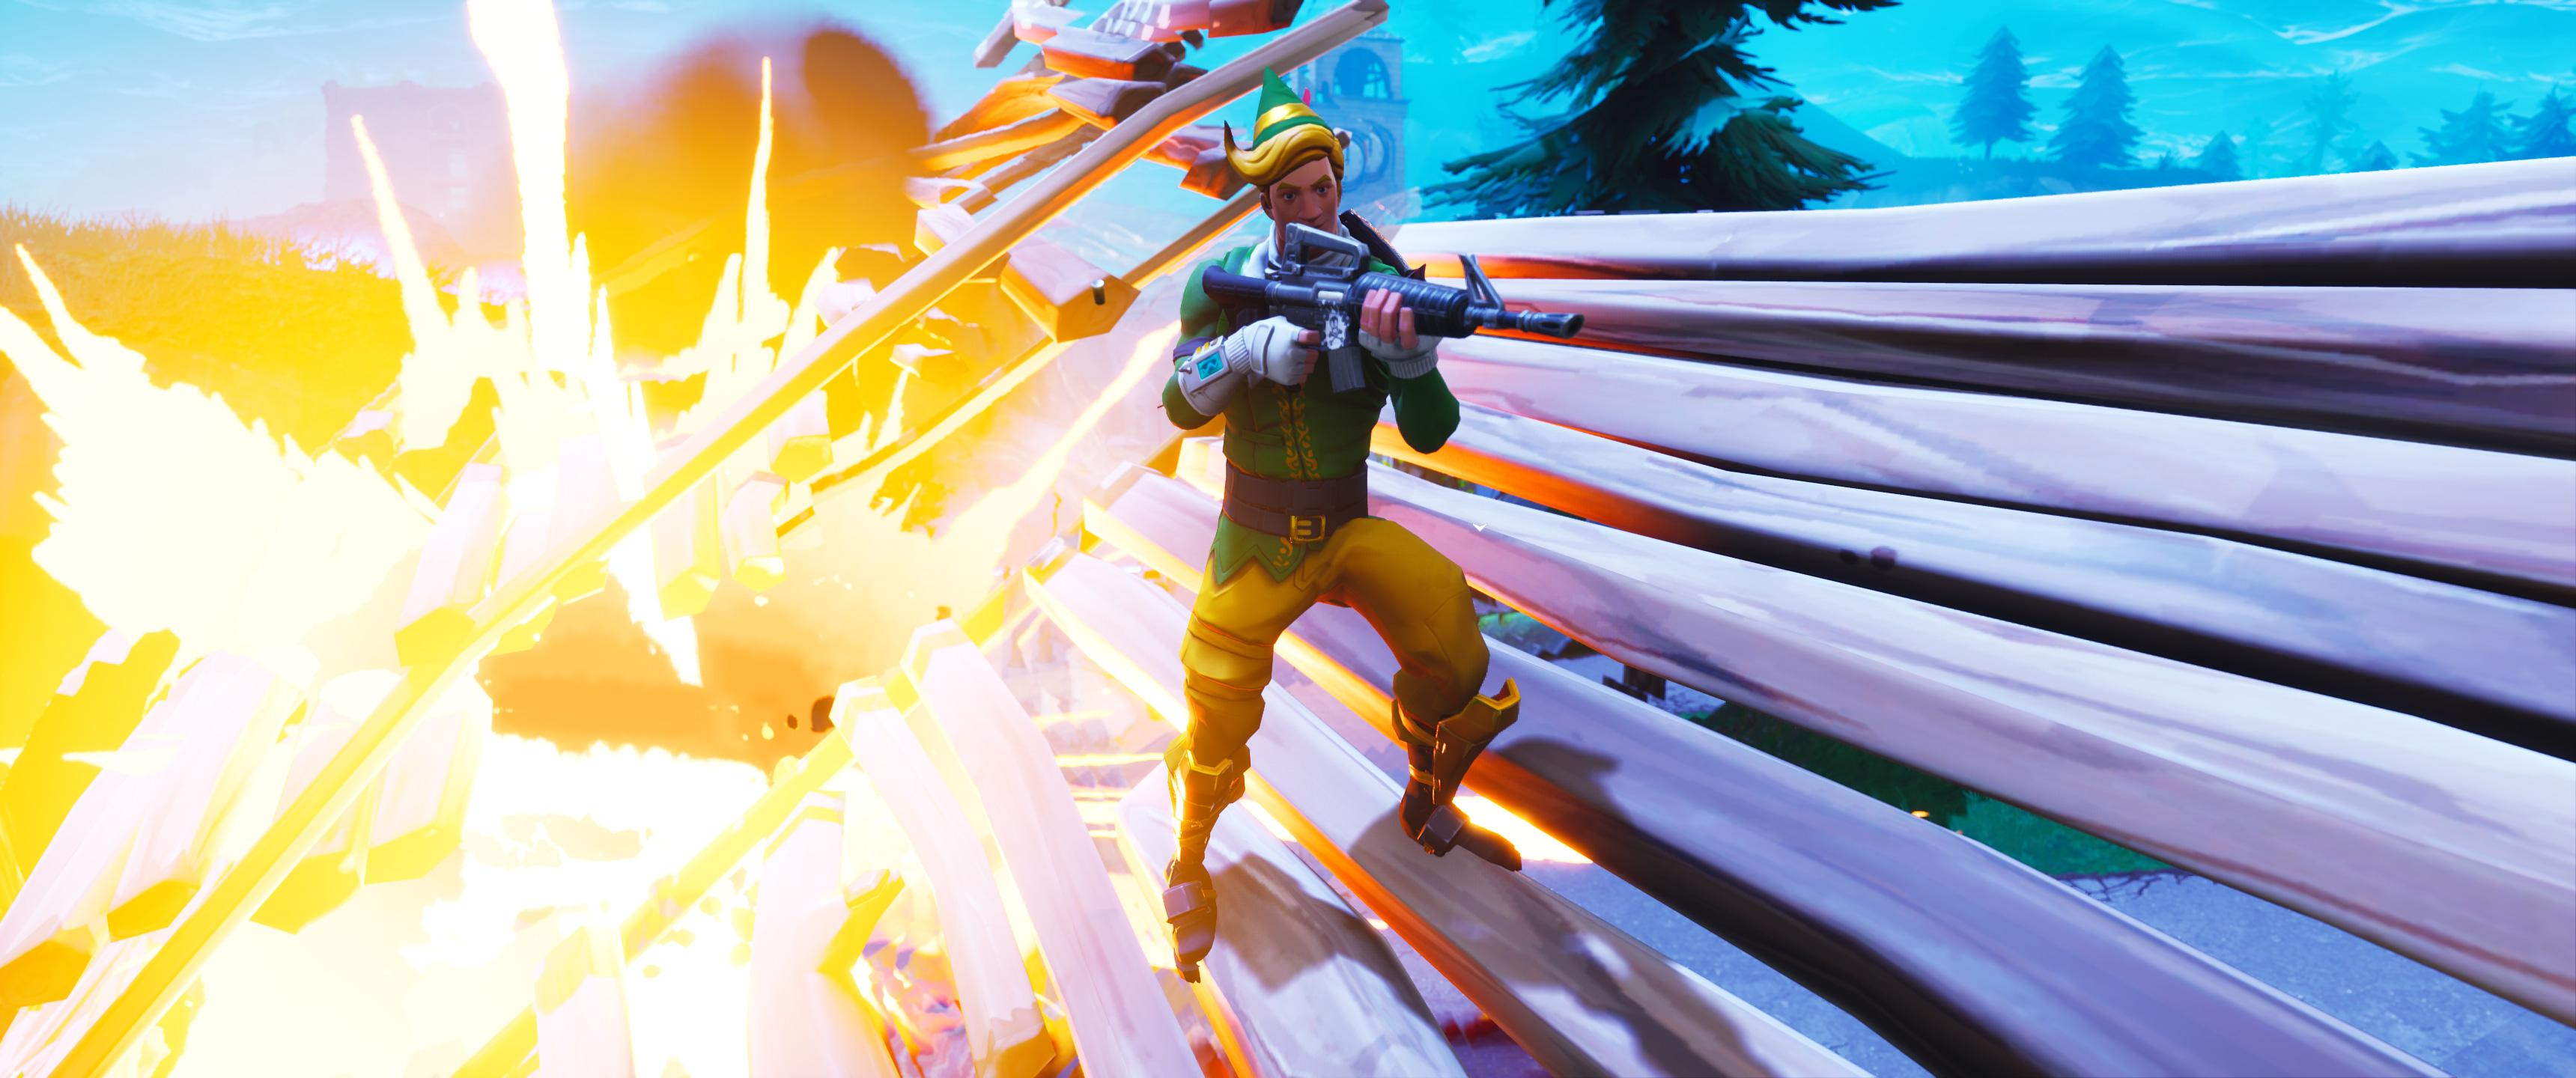 Download Fortnite Battle Royale Wallpaper Hd Backgrounds Download Itl Cat